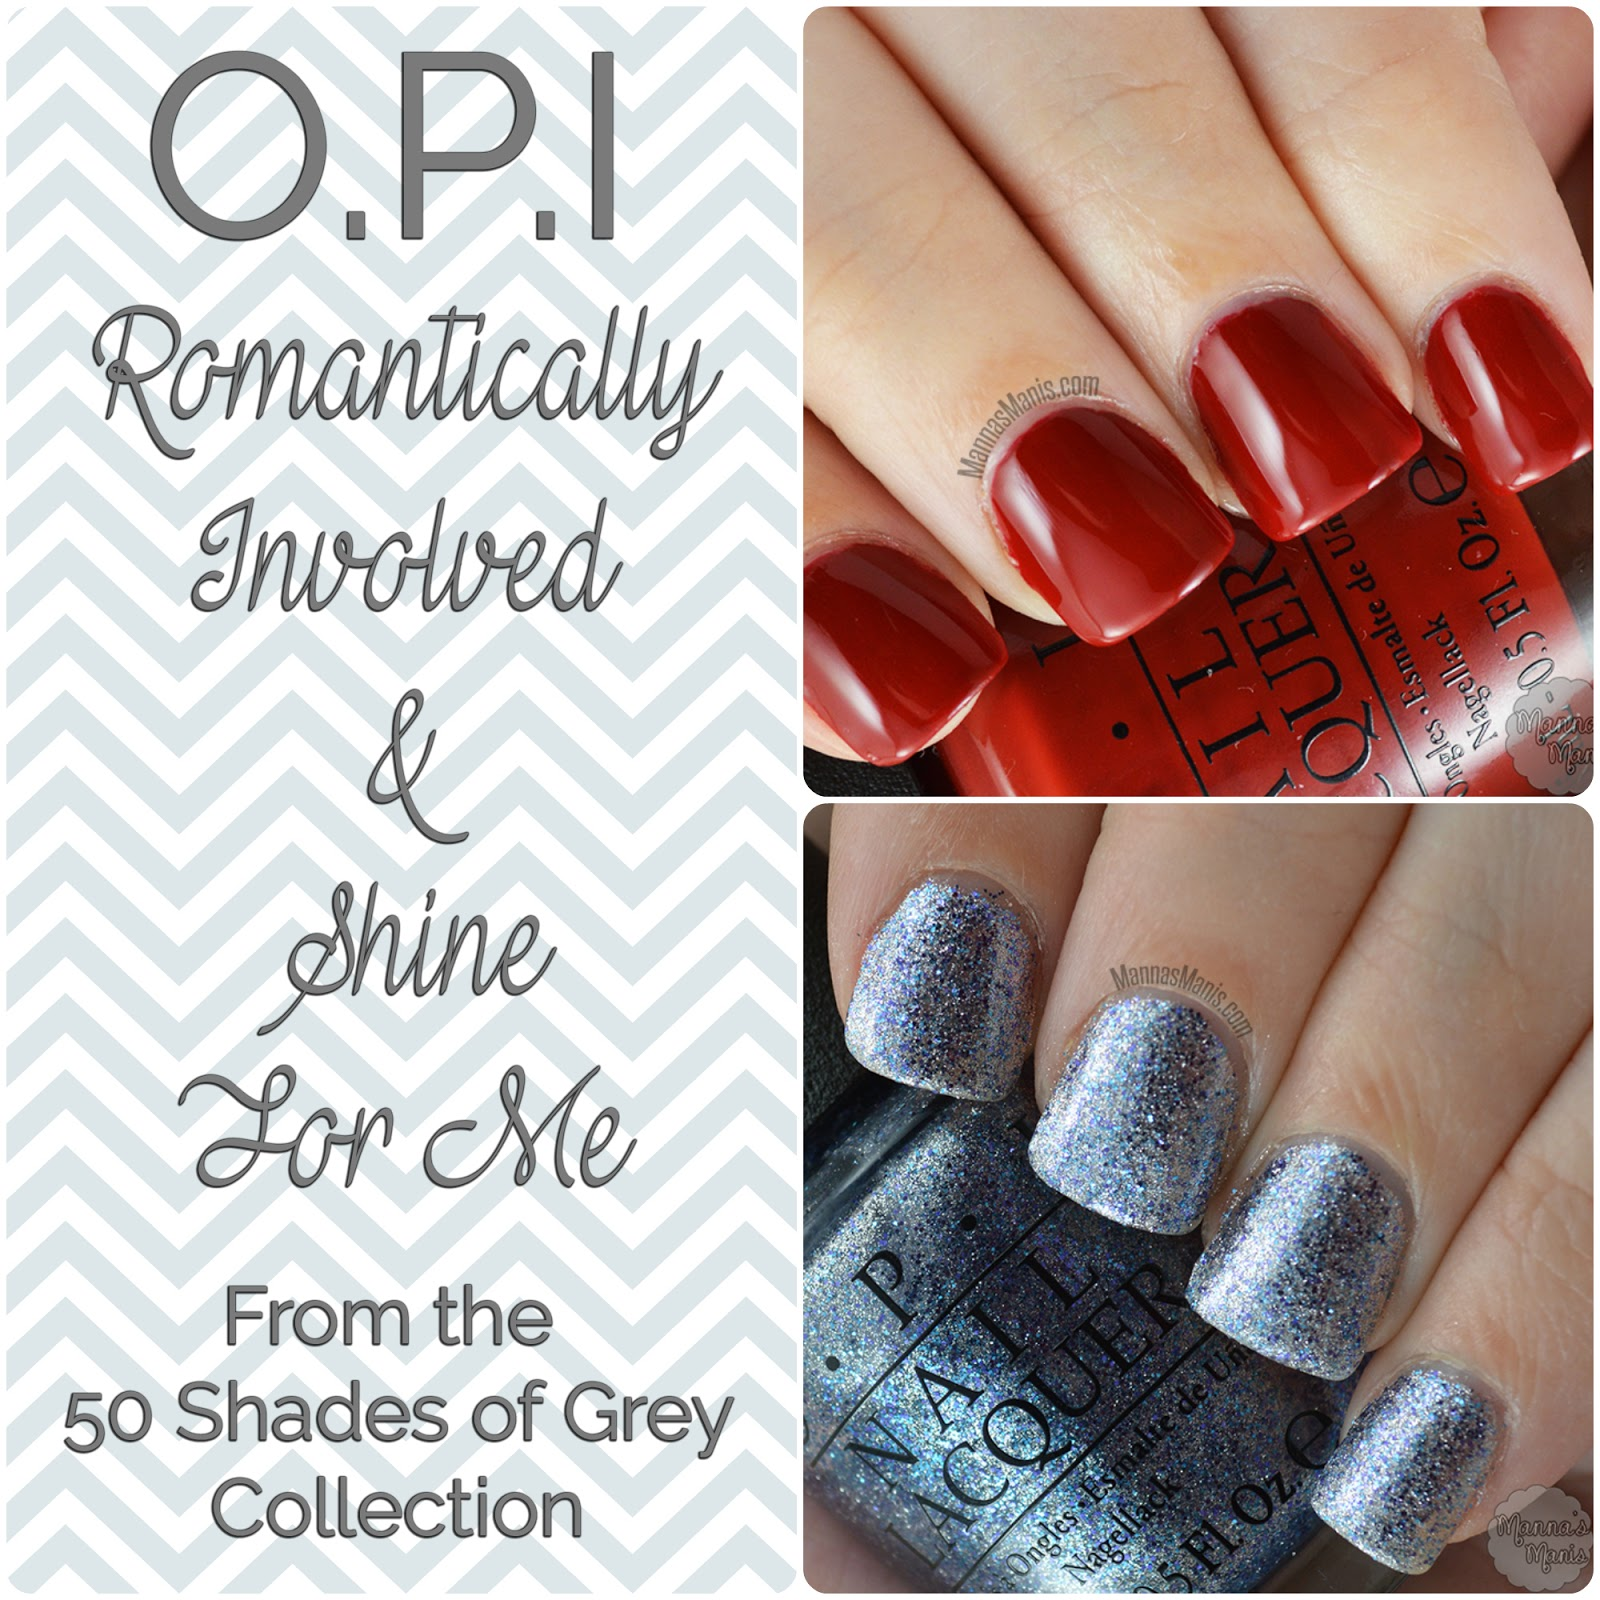 OPI romantically involved and shine for me from the 50 shades of grey collection